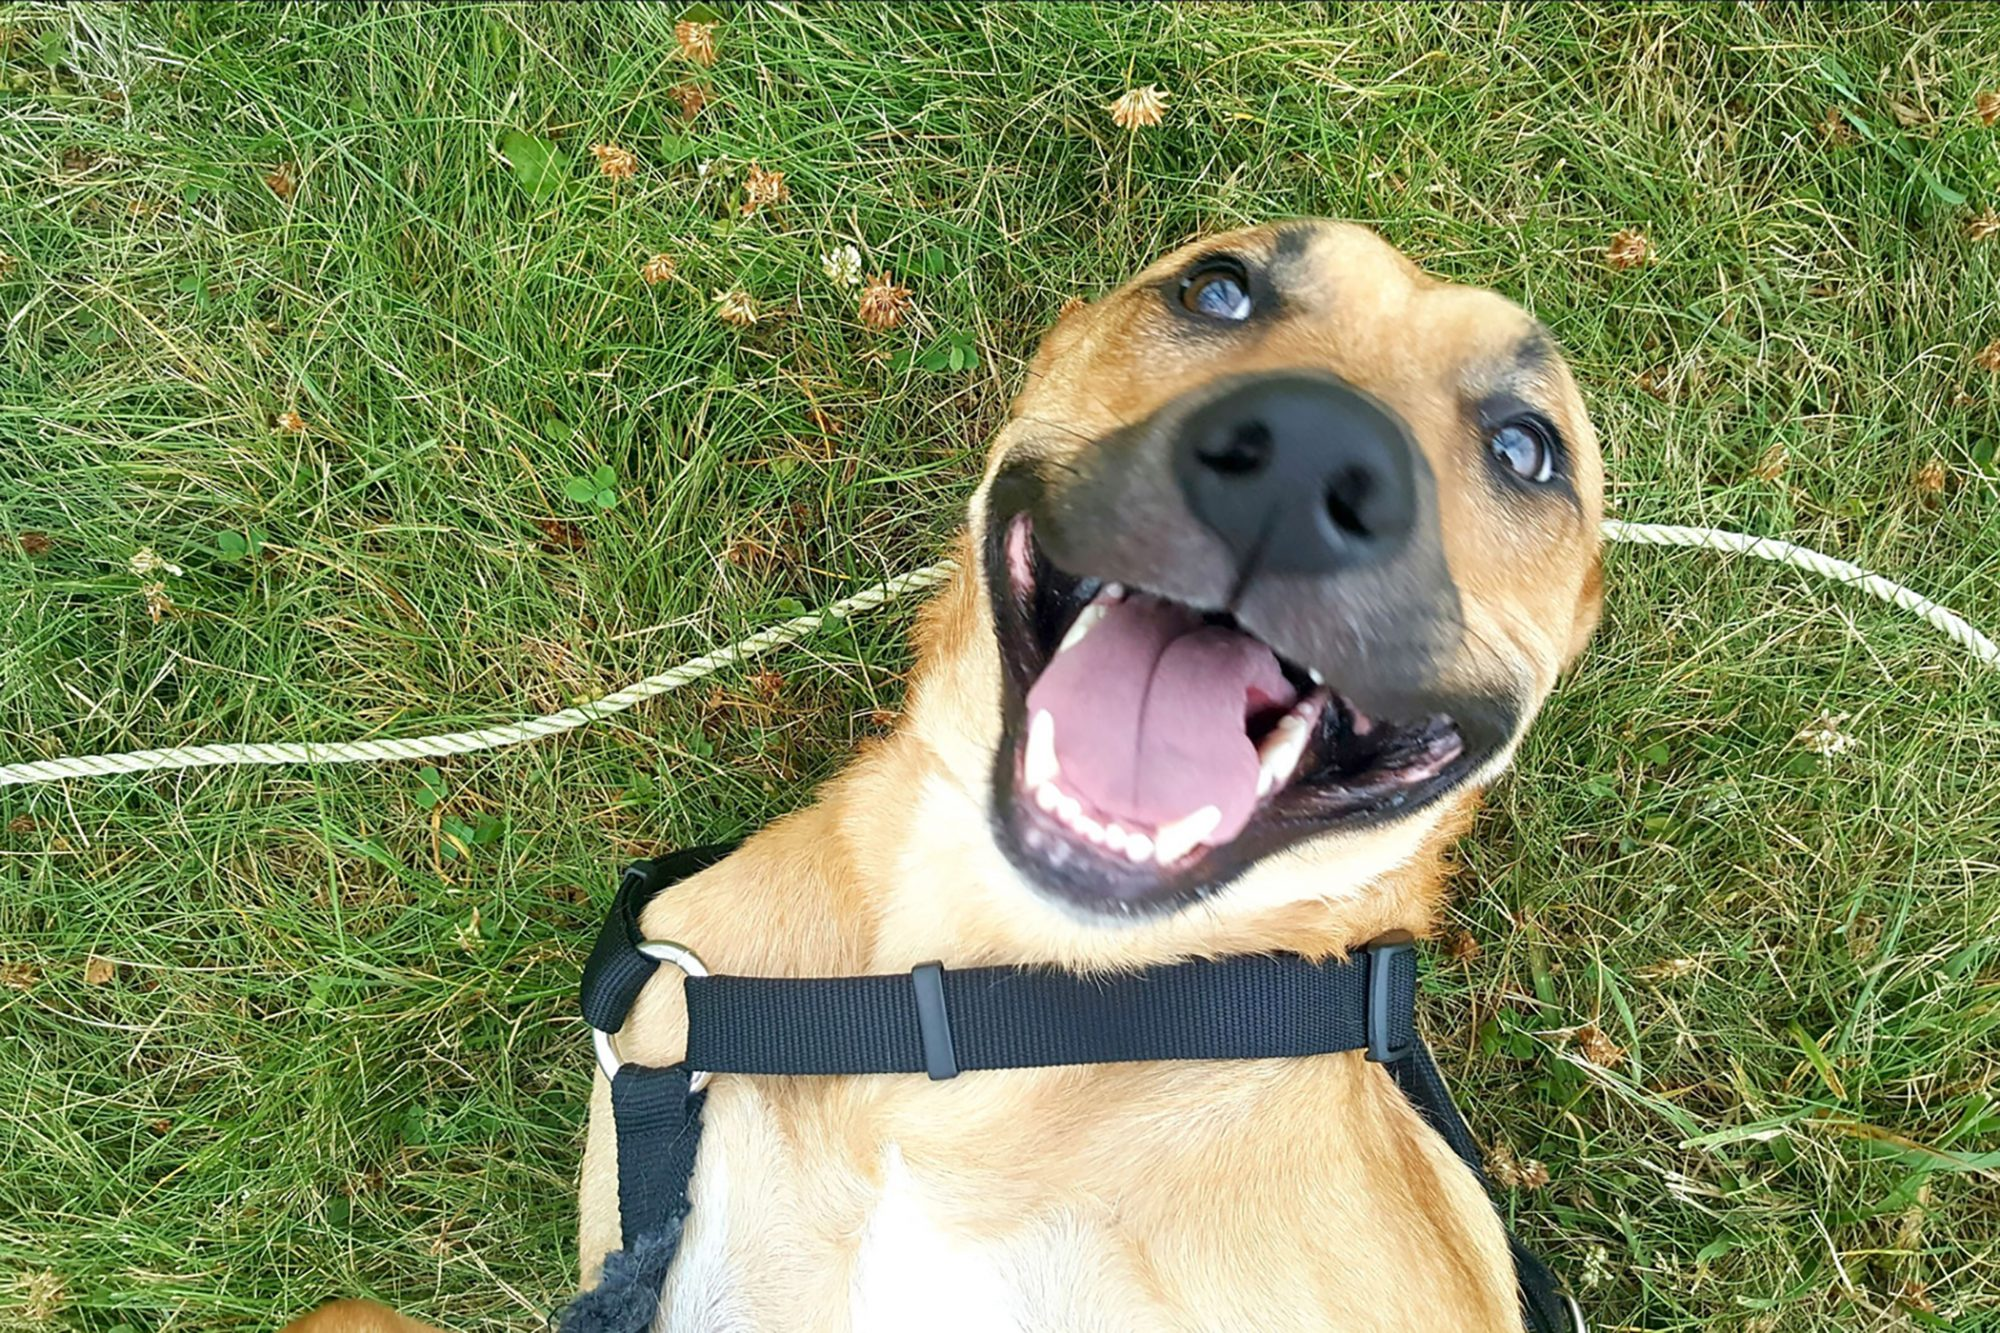 Goofy dog in harness smiles in grass